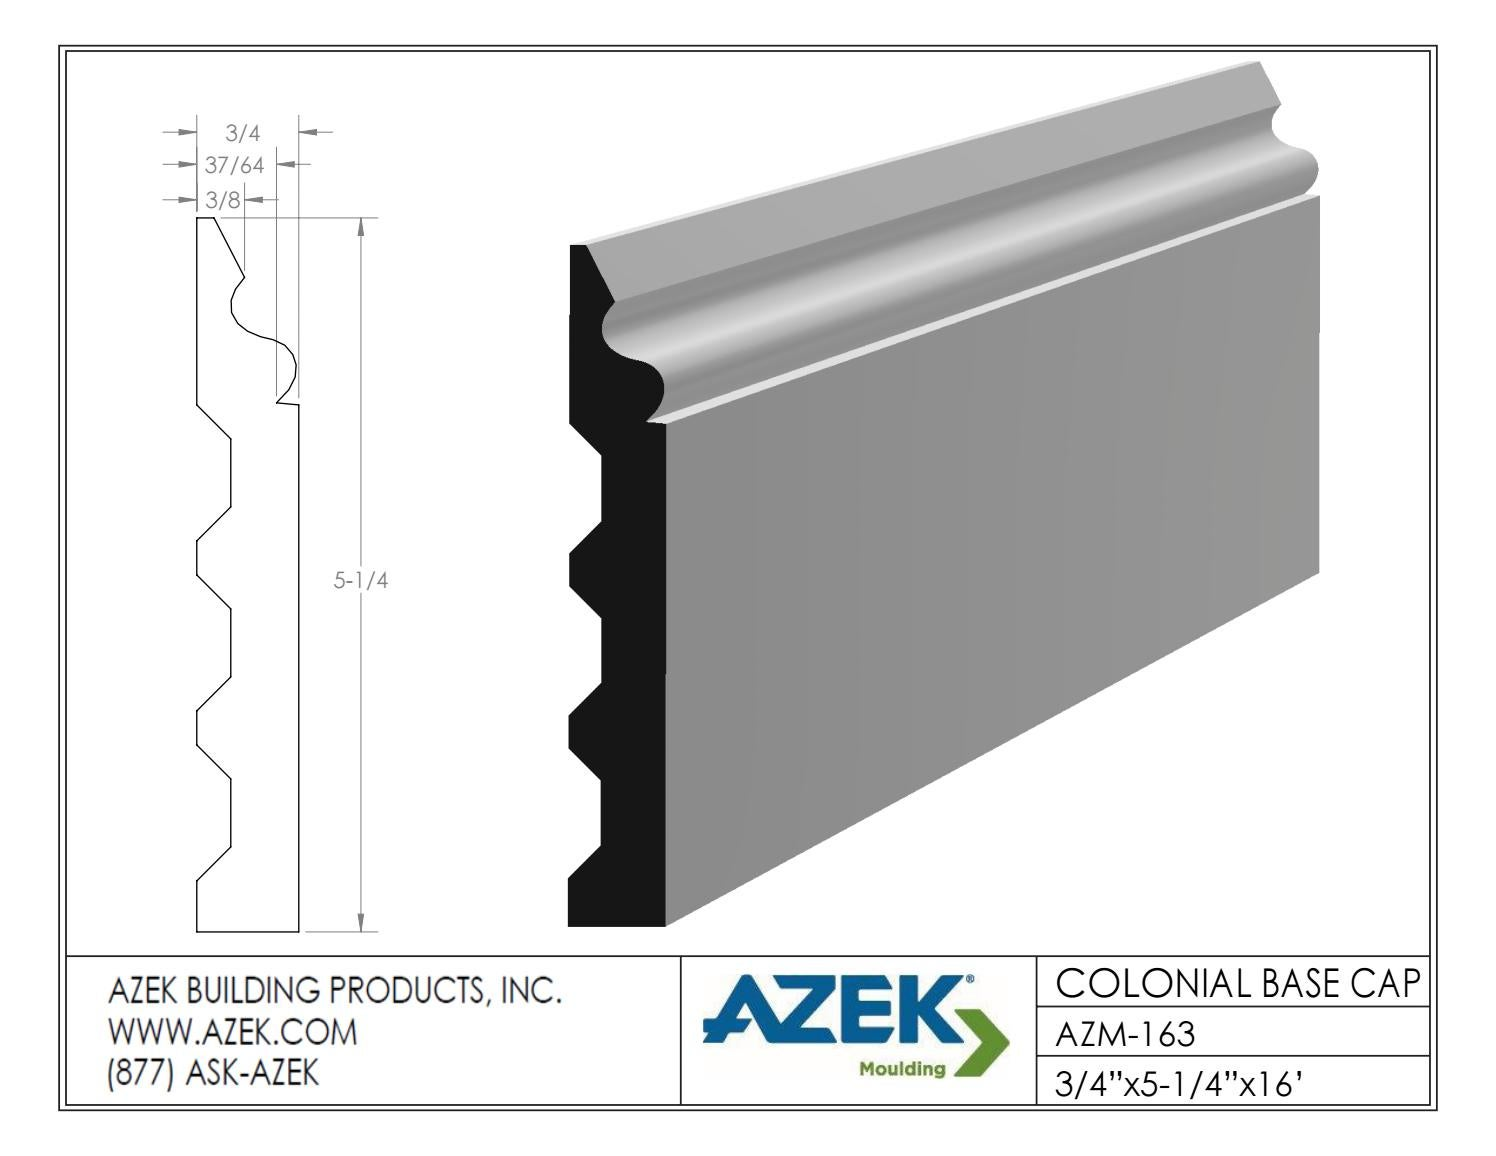 Azek Moulding Colonial Base Cap AZM 163 Specifications by